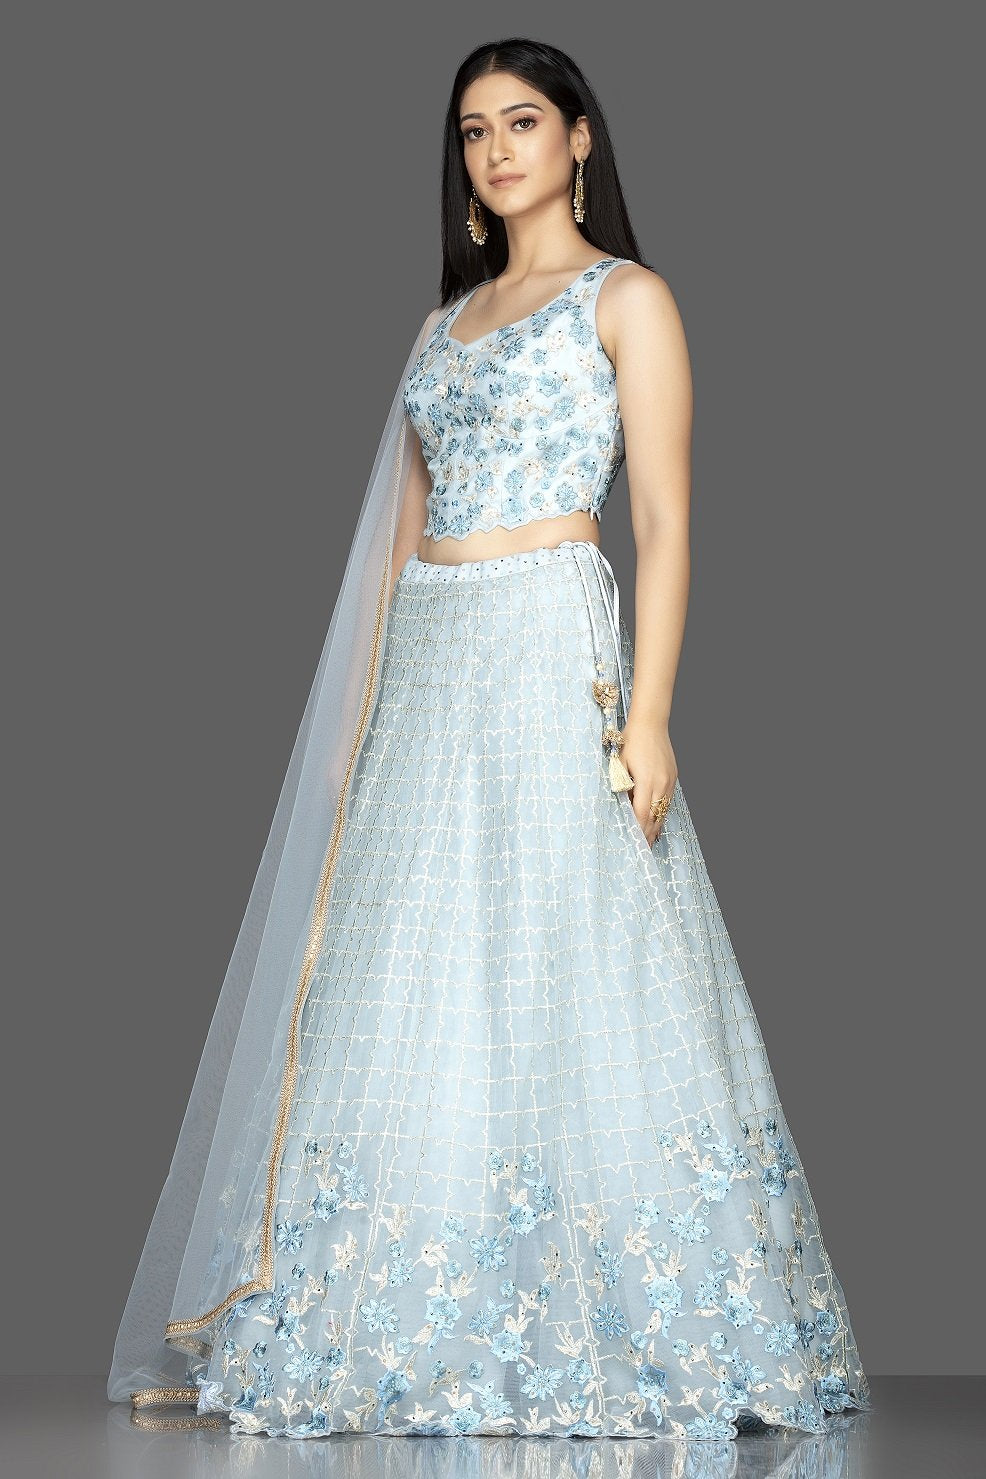 Buy beautiful powder blue embroidered designer net lehenga online in USA with matching net dupatta. Look radiant on weddings and special occasions in splendid designer lehengas crafted with finest embroideries and stunning silhouettes from Pure Elegance Indian fashion boutique in USA.-side